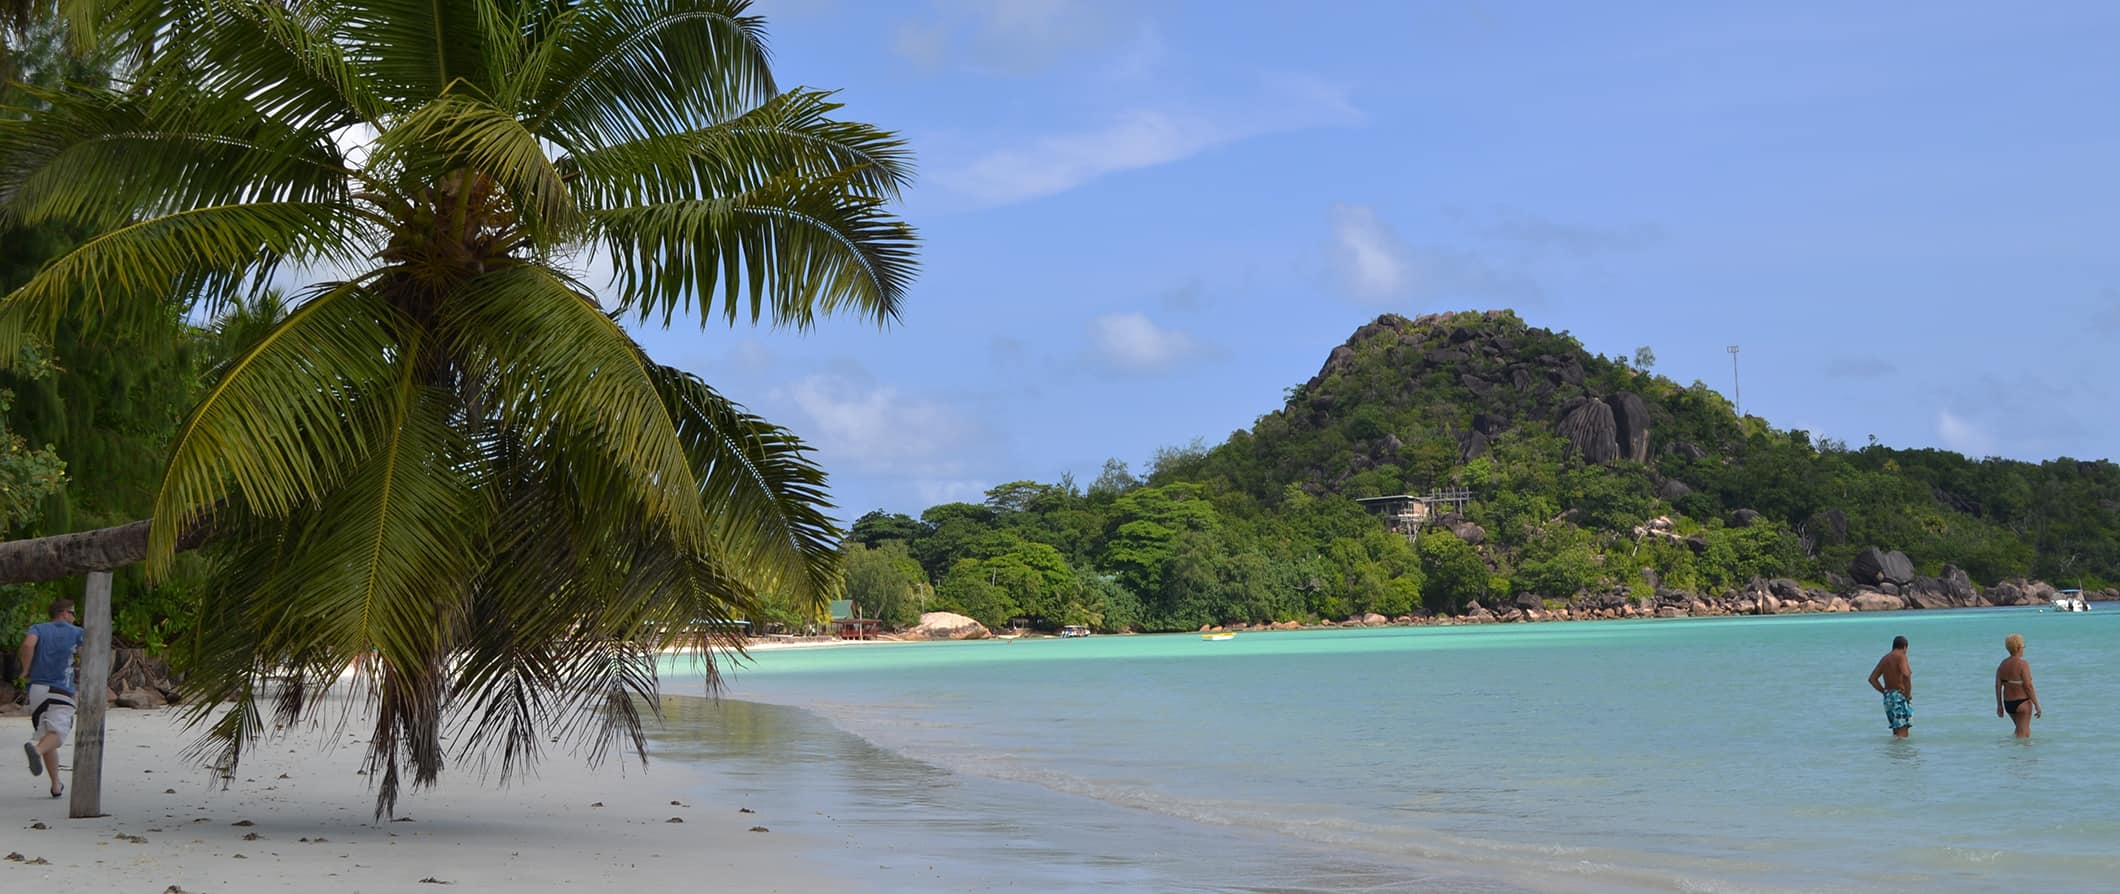 a tropical beach in Seychelles